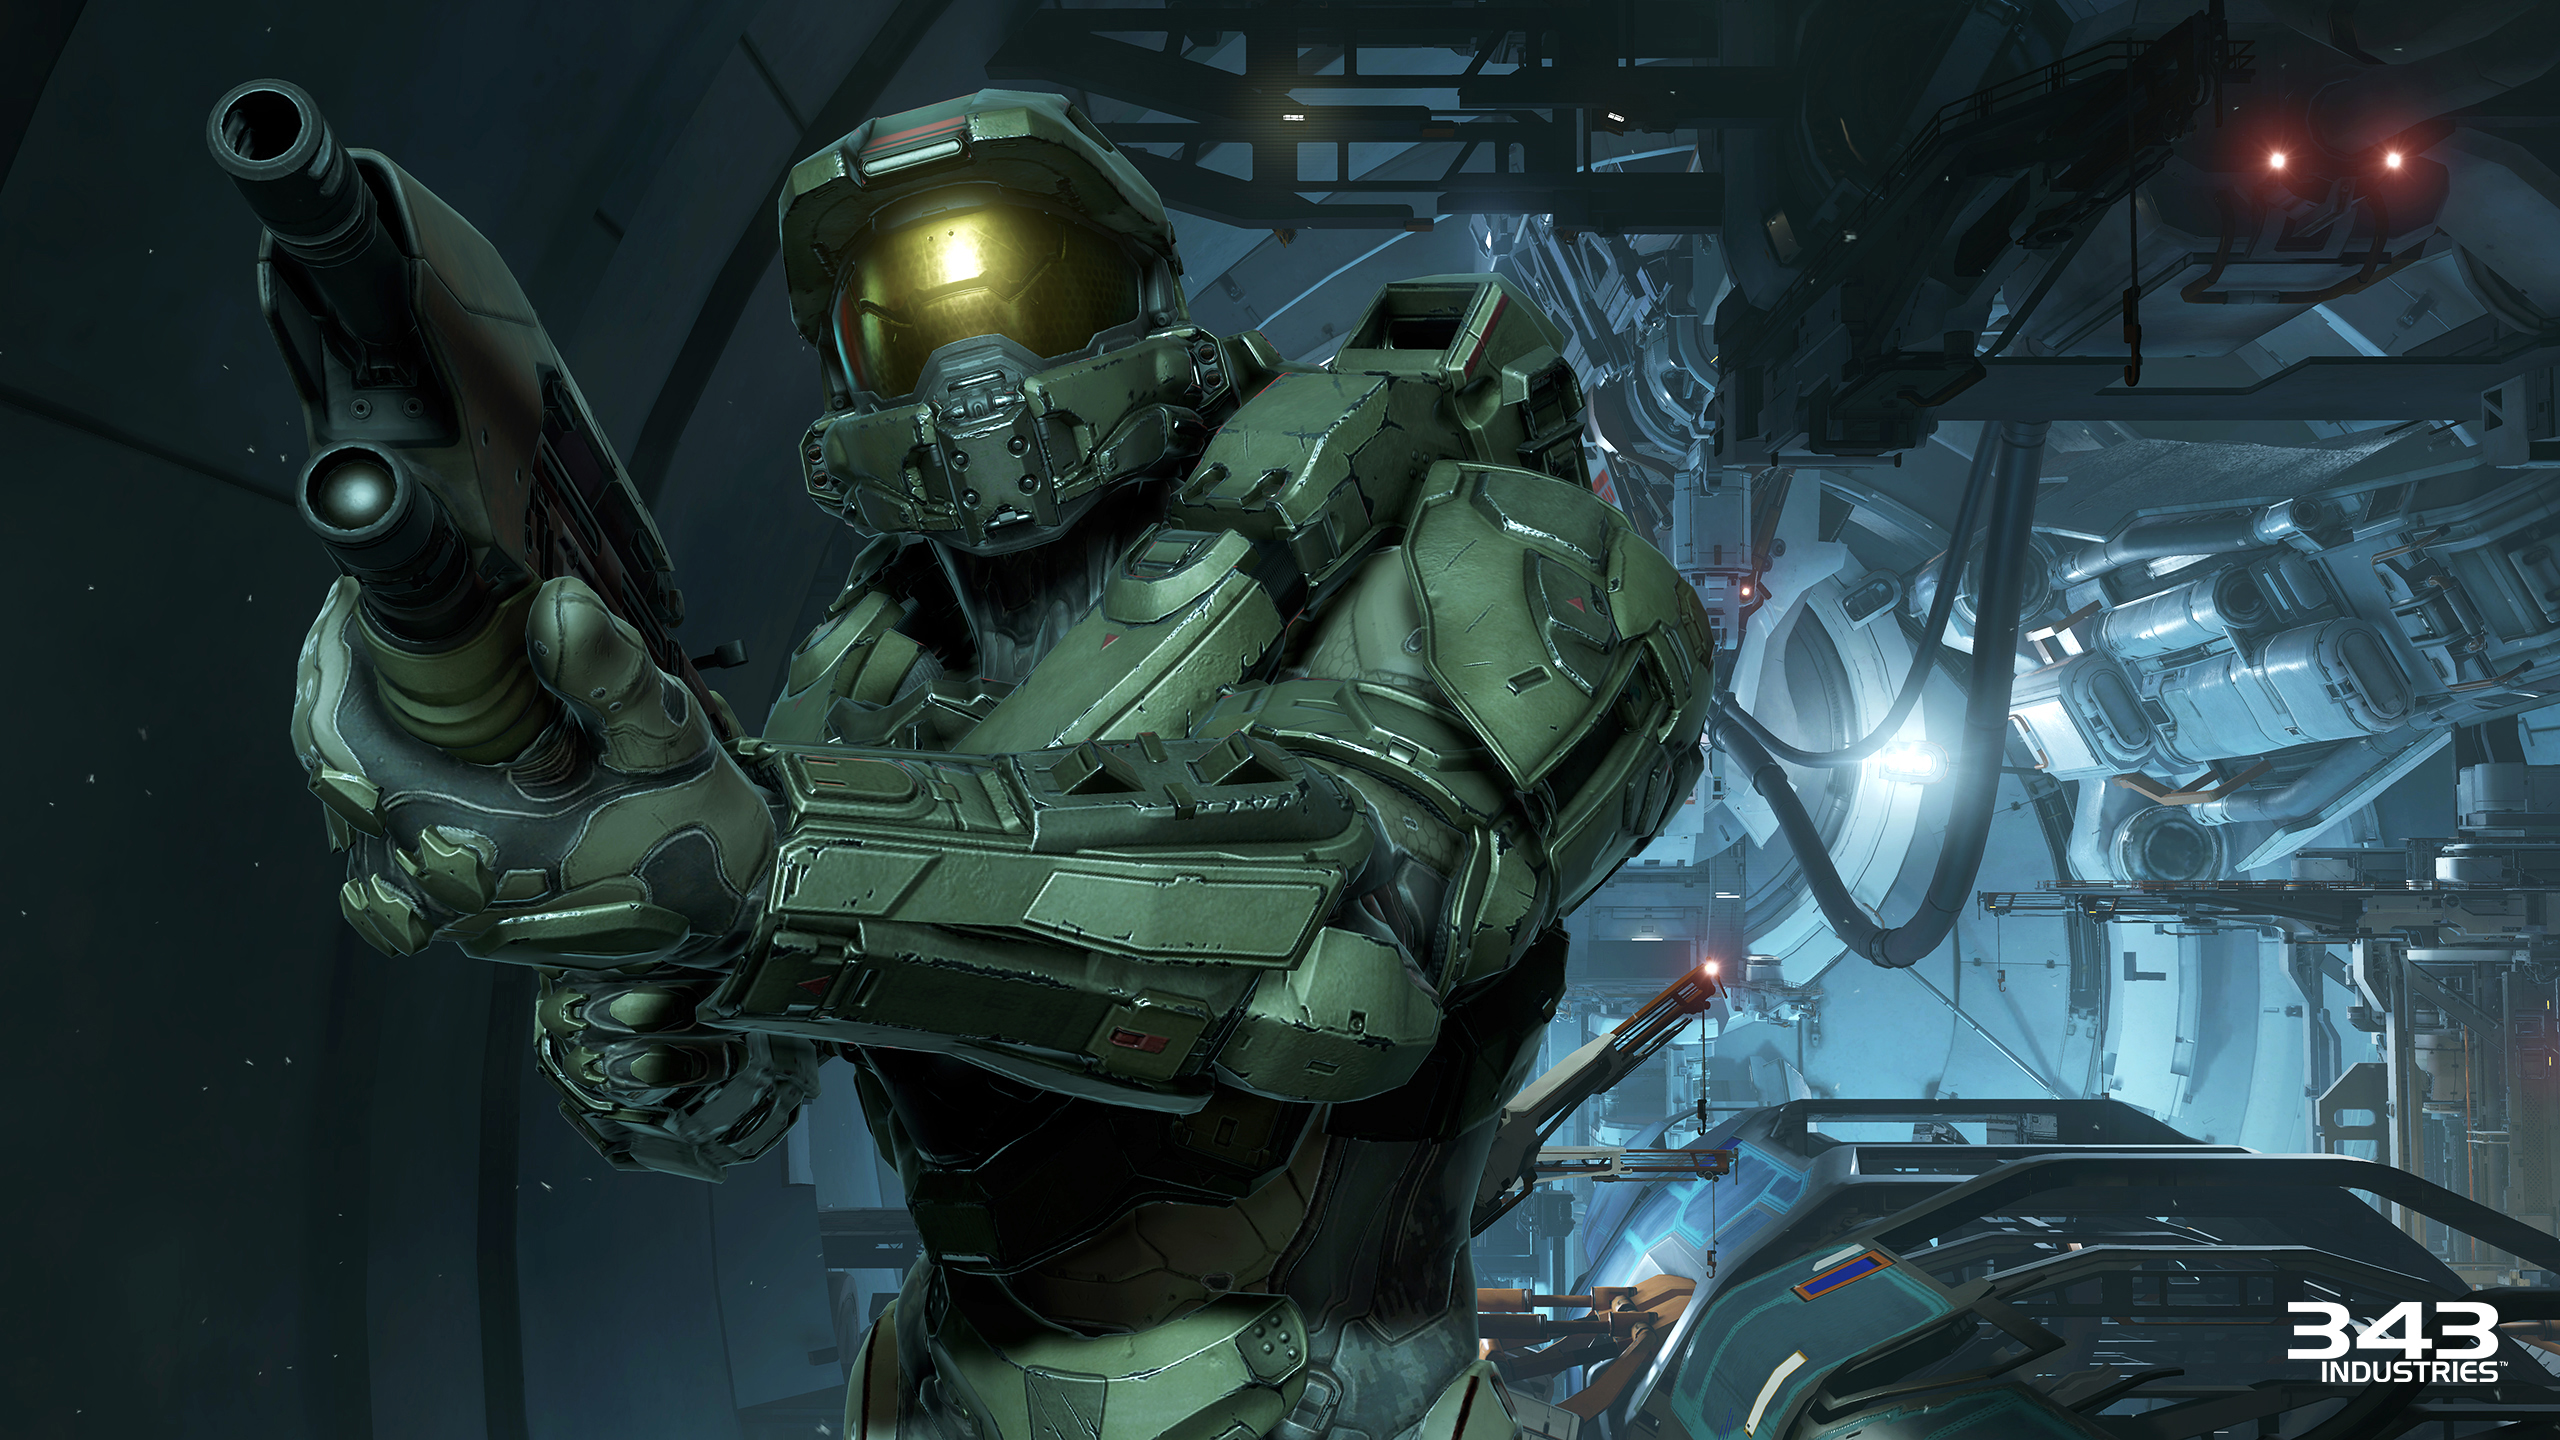 Halo 3 Arbiter Wallpaper 86 images  Get the Best HD